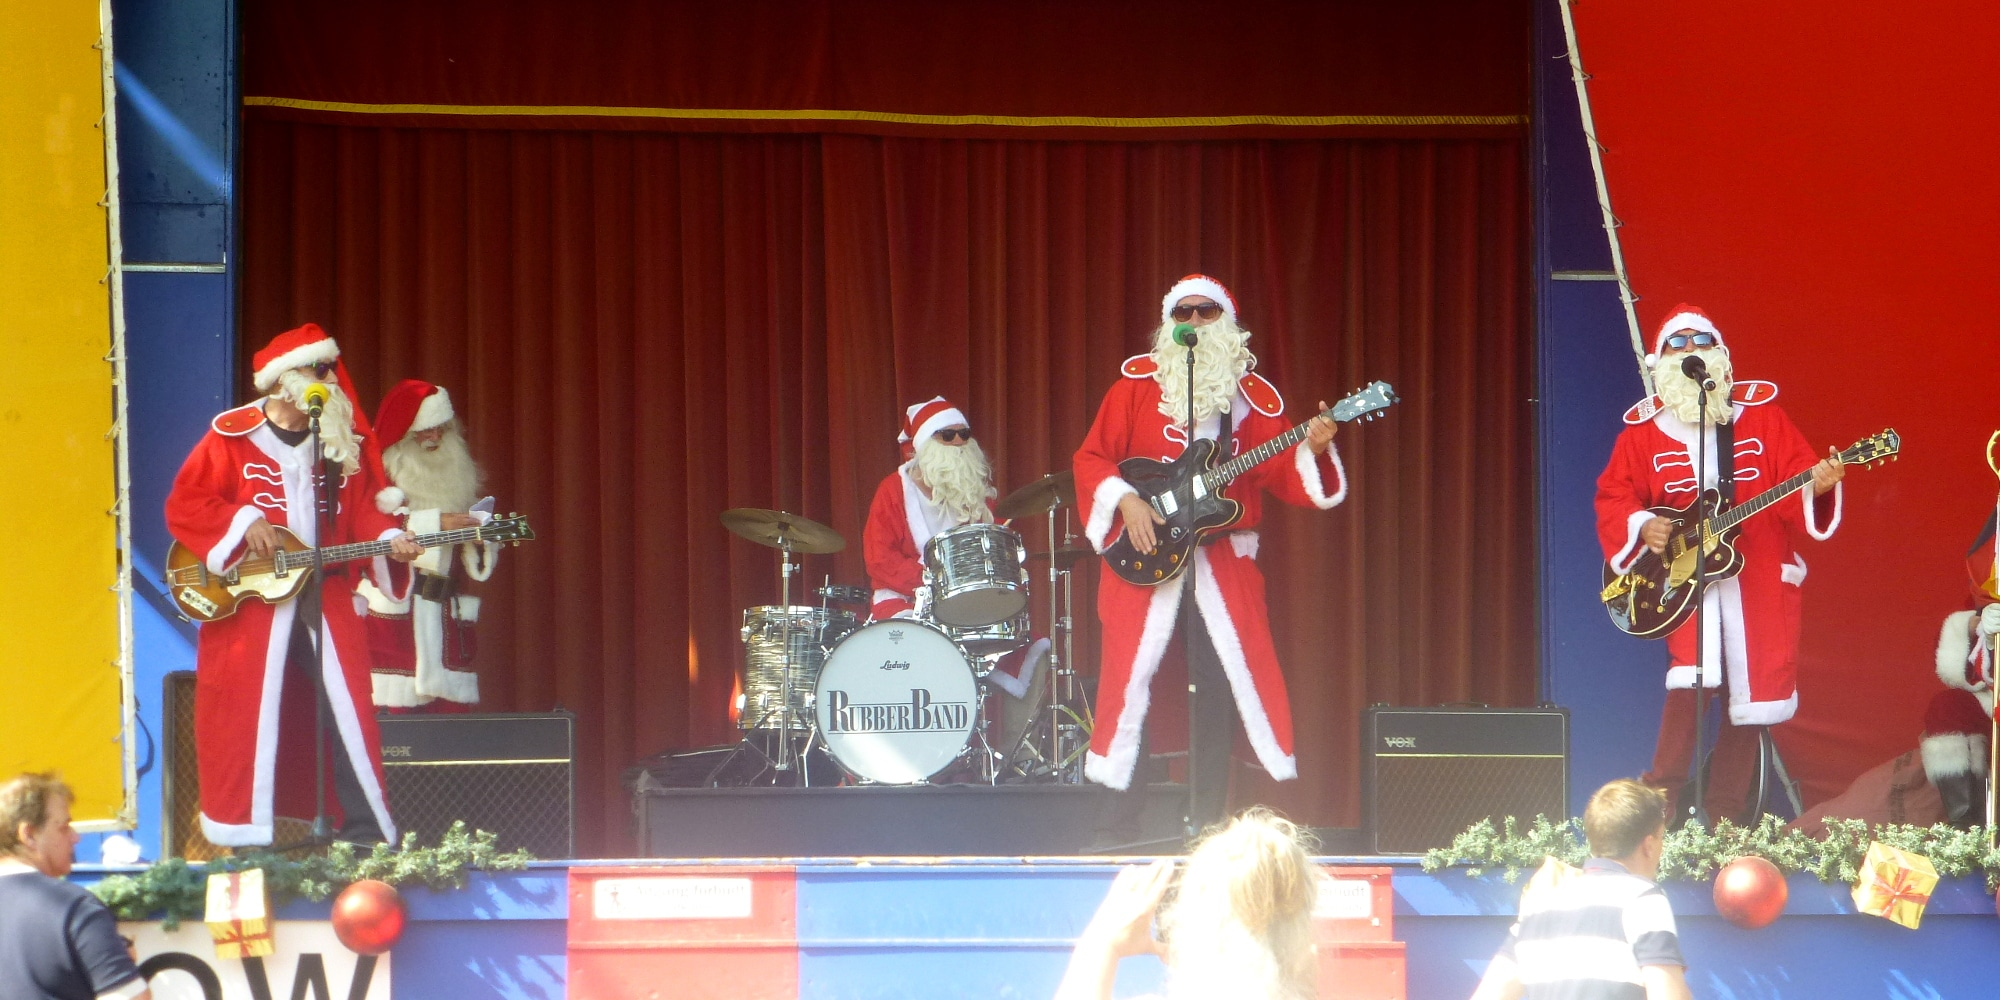 a band of guys all dressed as Santa plays music